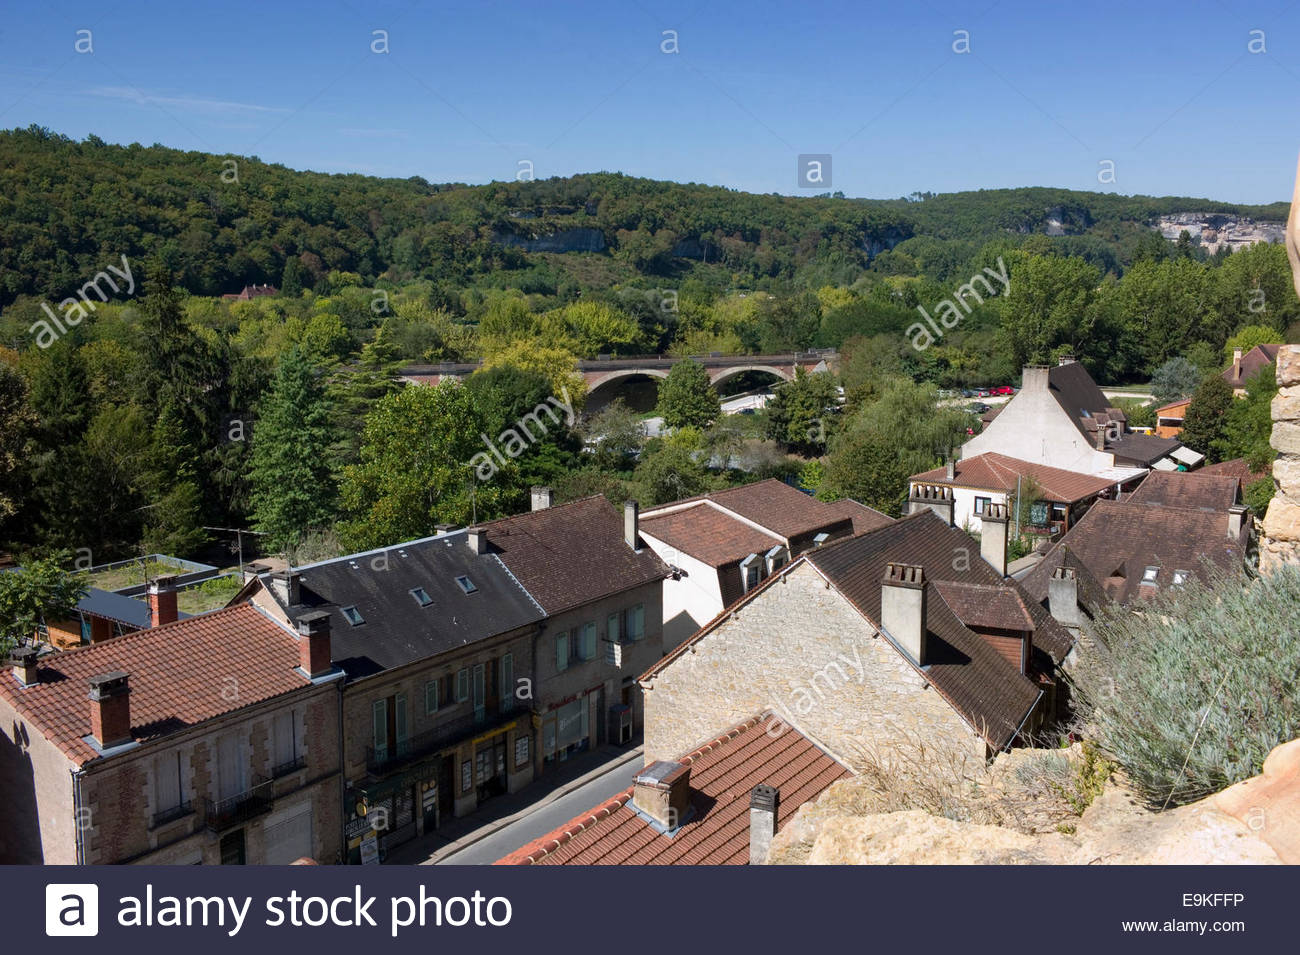 Tiled roofs in the town of Les Eyzies de Tayac En Perigord, Dordogne, France, with the railway viaduct in the distance - Stock Image